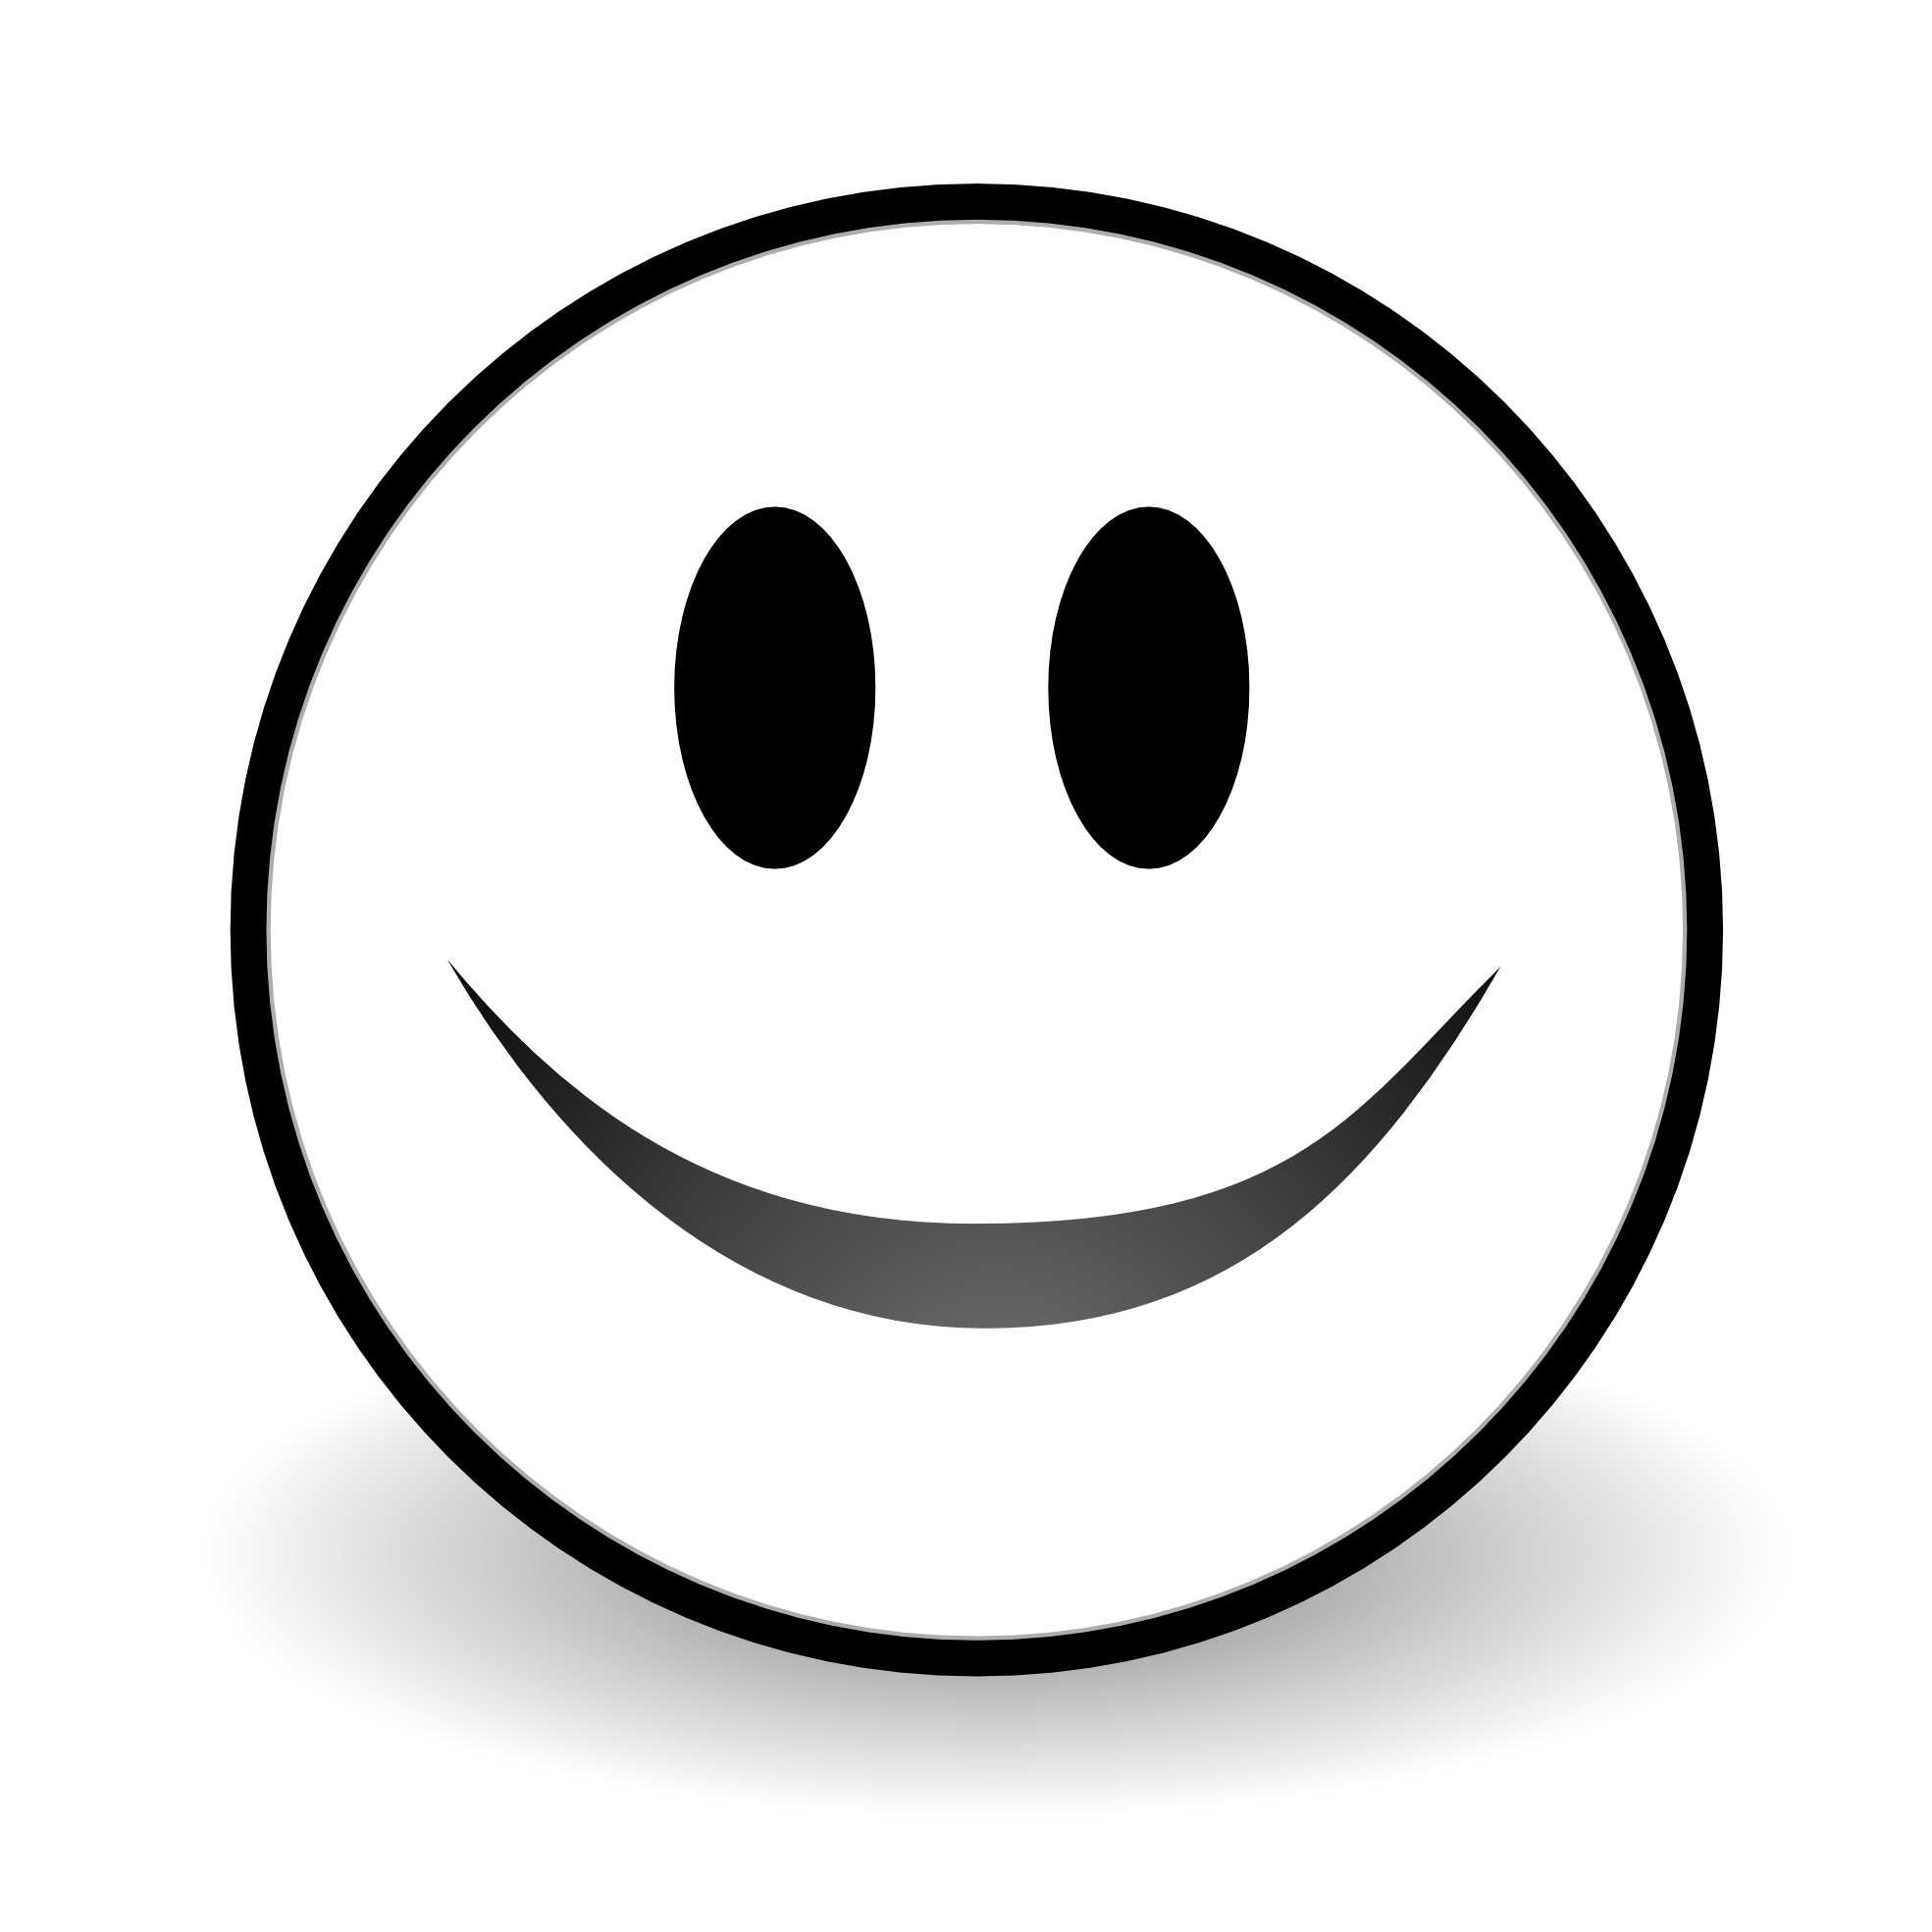 Smile getting bigger black and white clipart graphic download Free Smile Cliparts, Download Free Clip Art, Free Clip Art ... graphic download